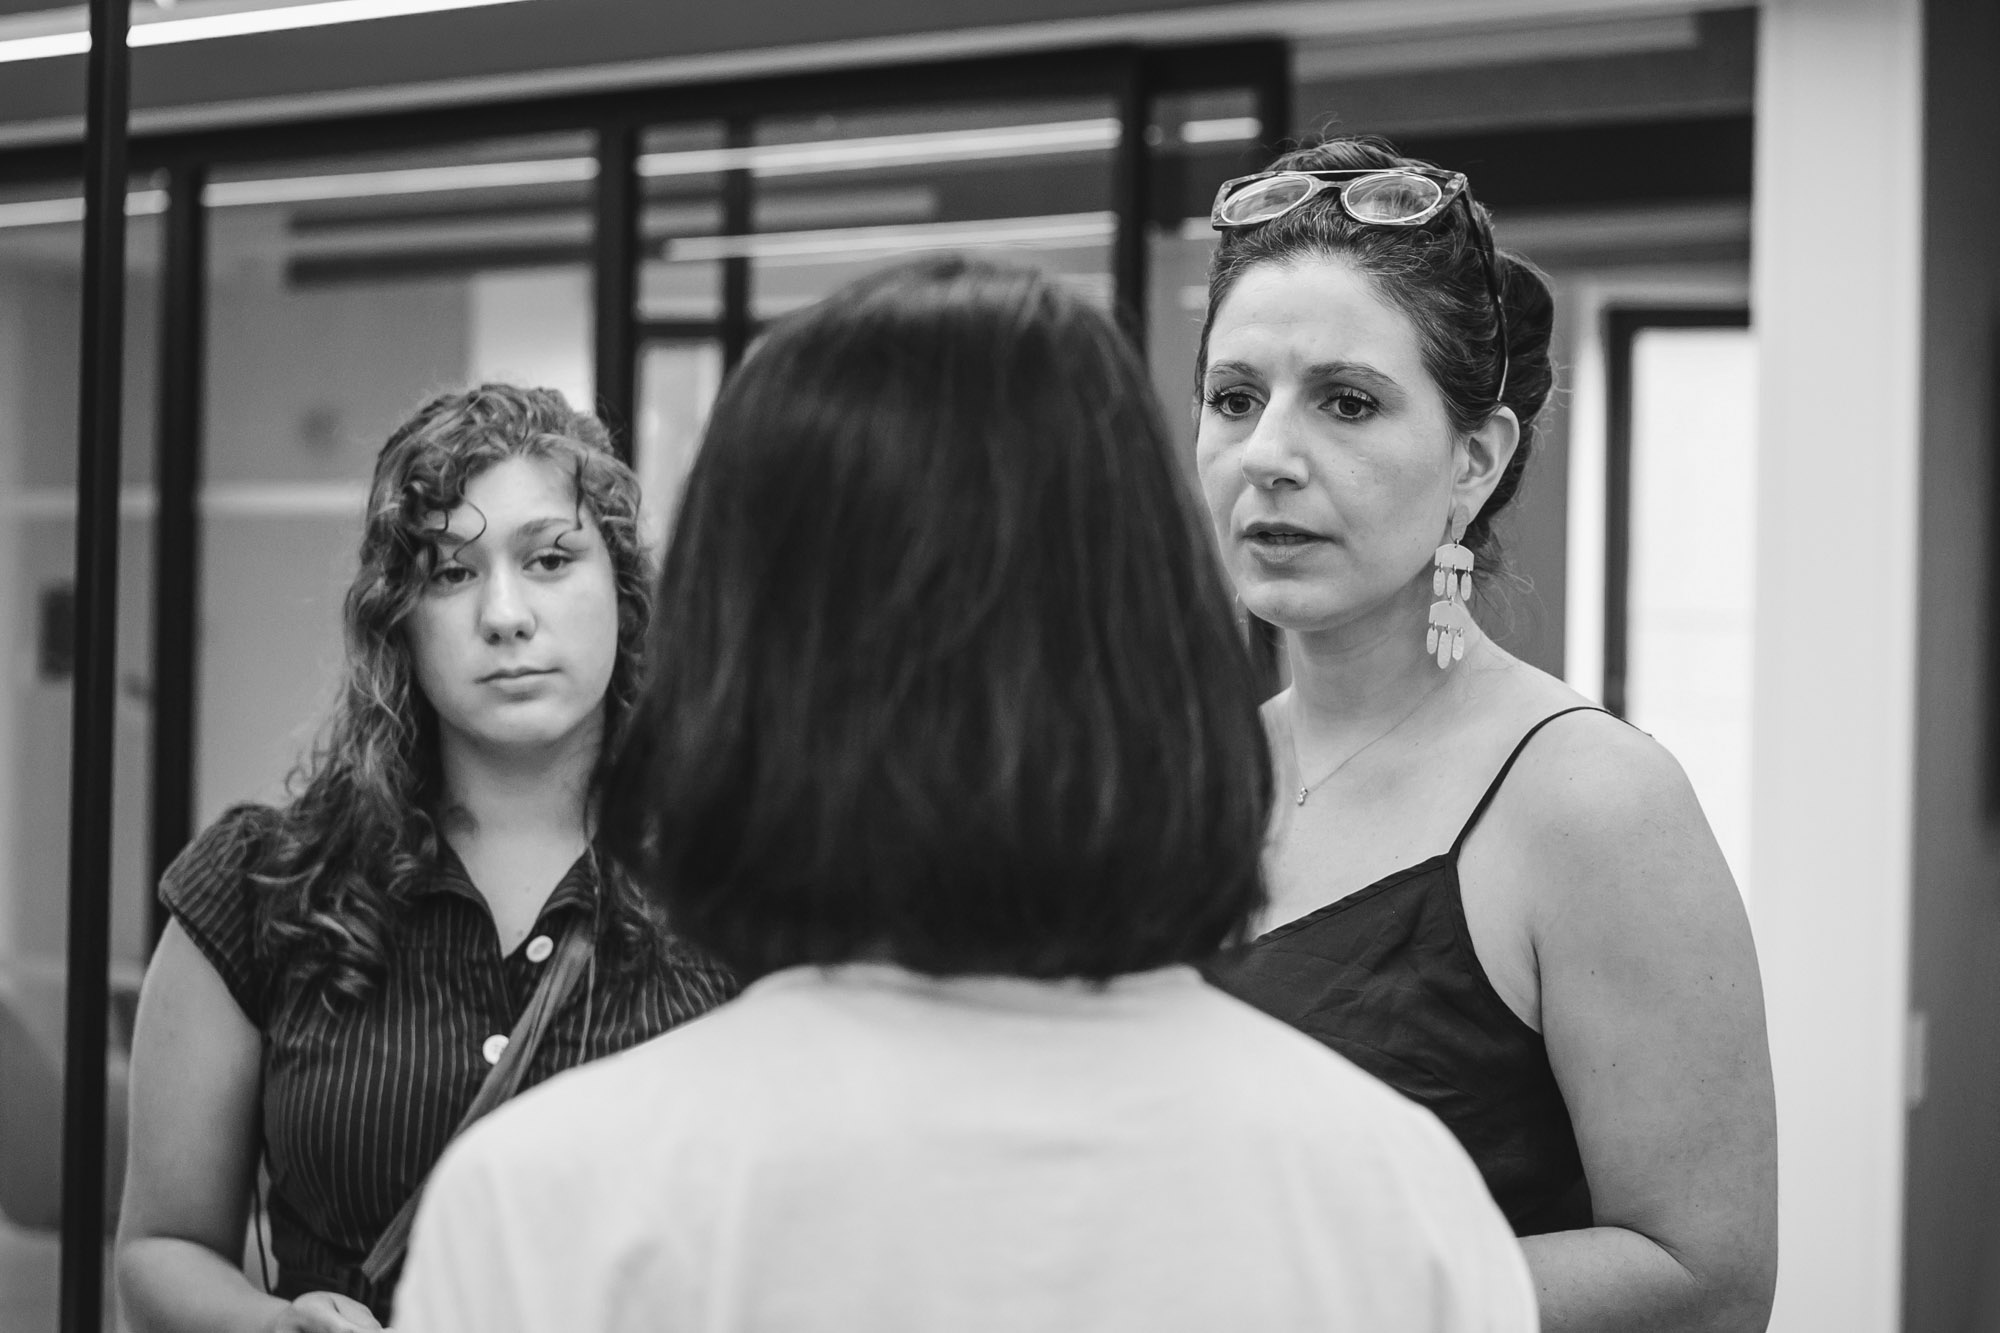 Three women in discussion